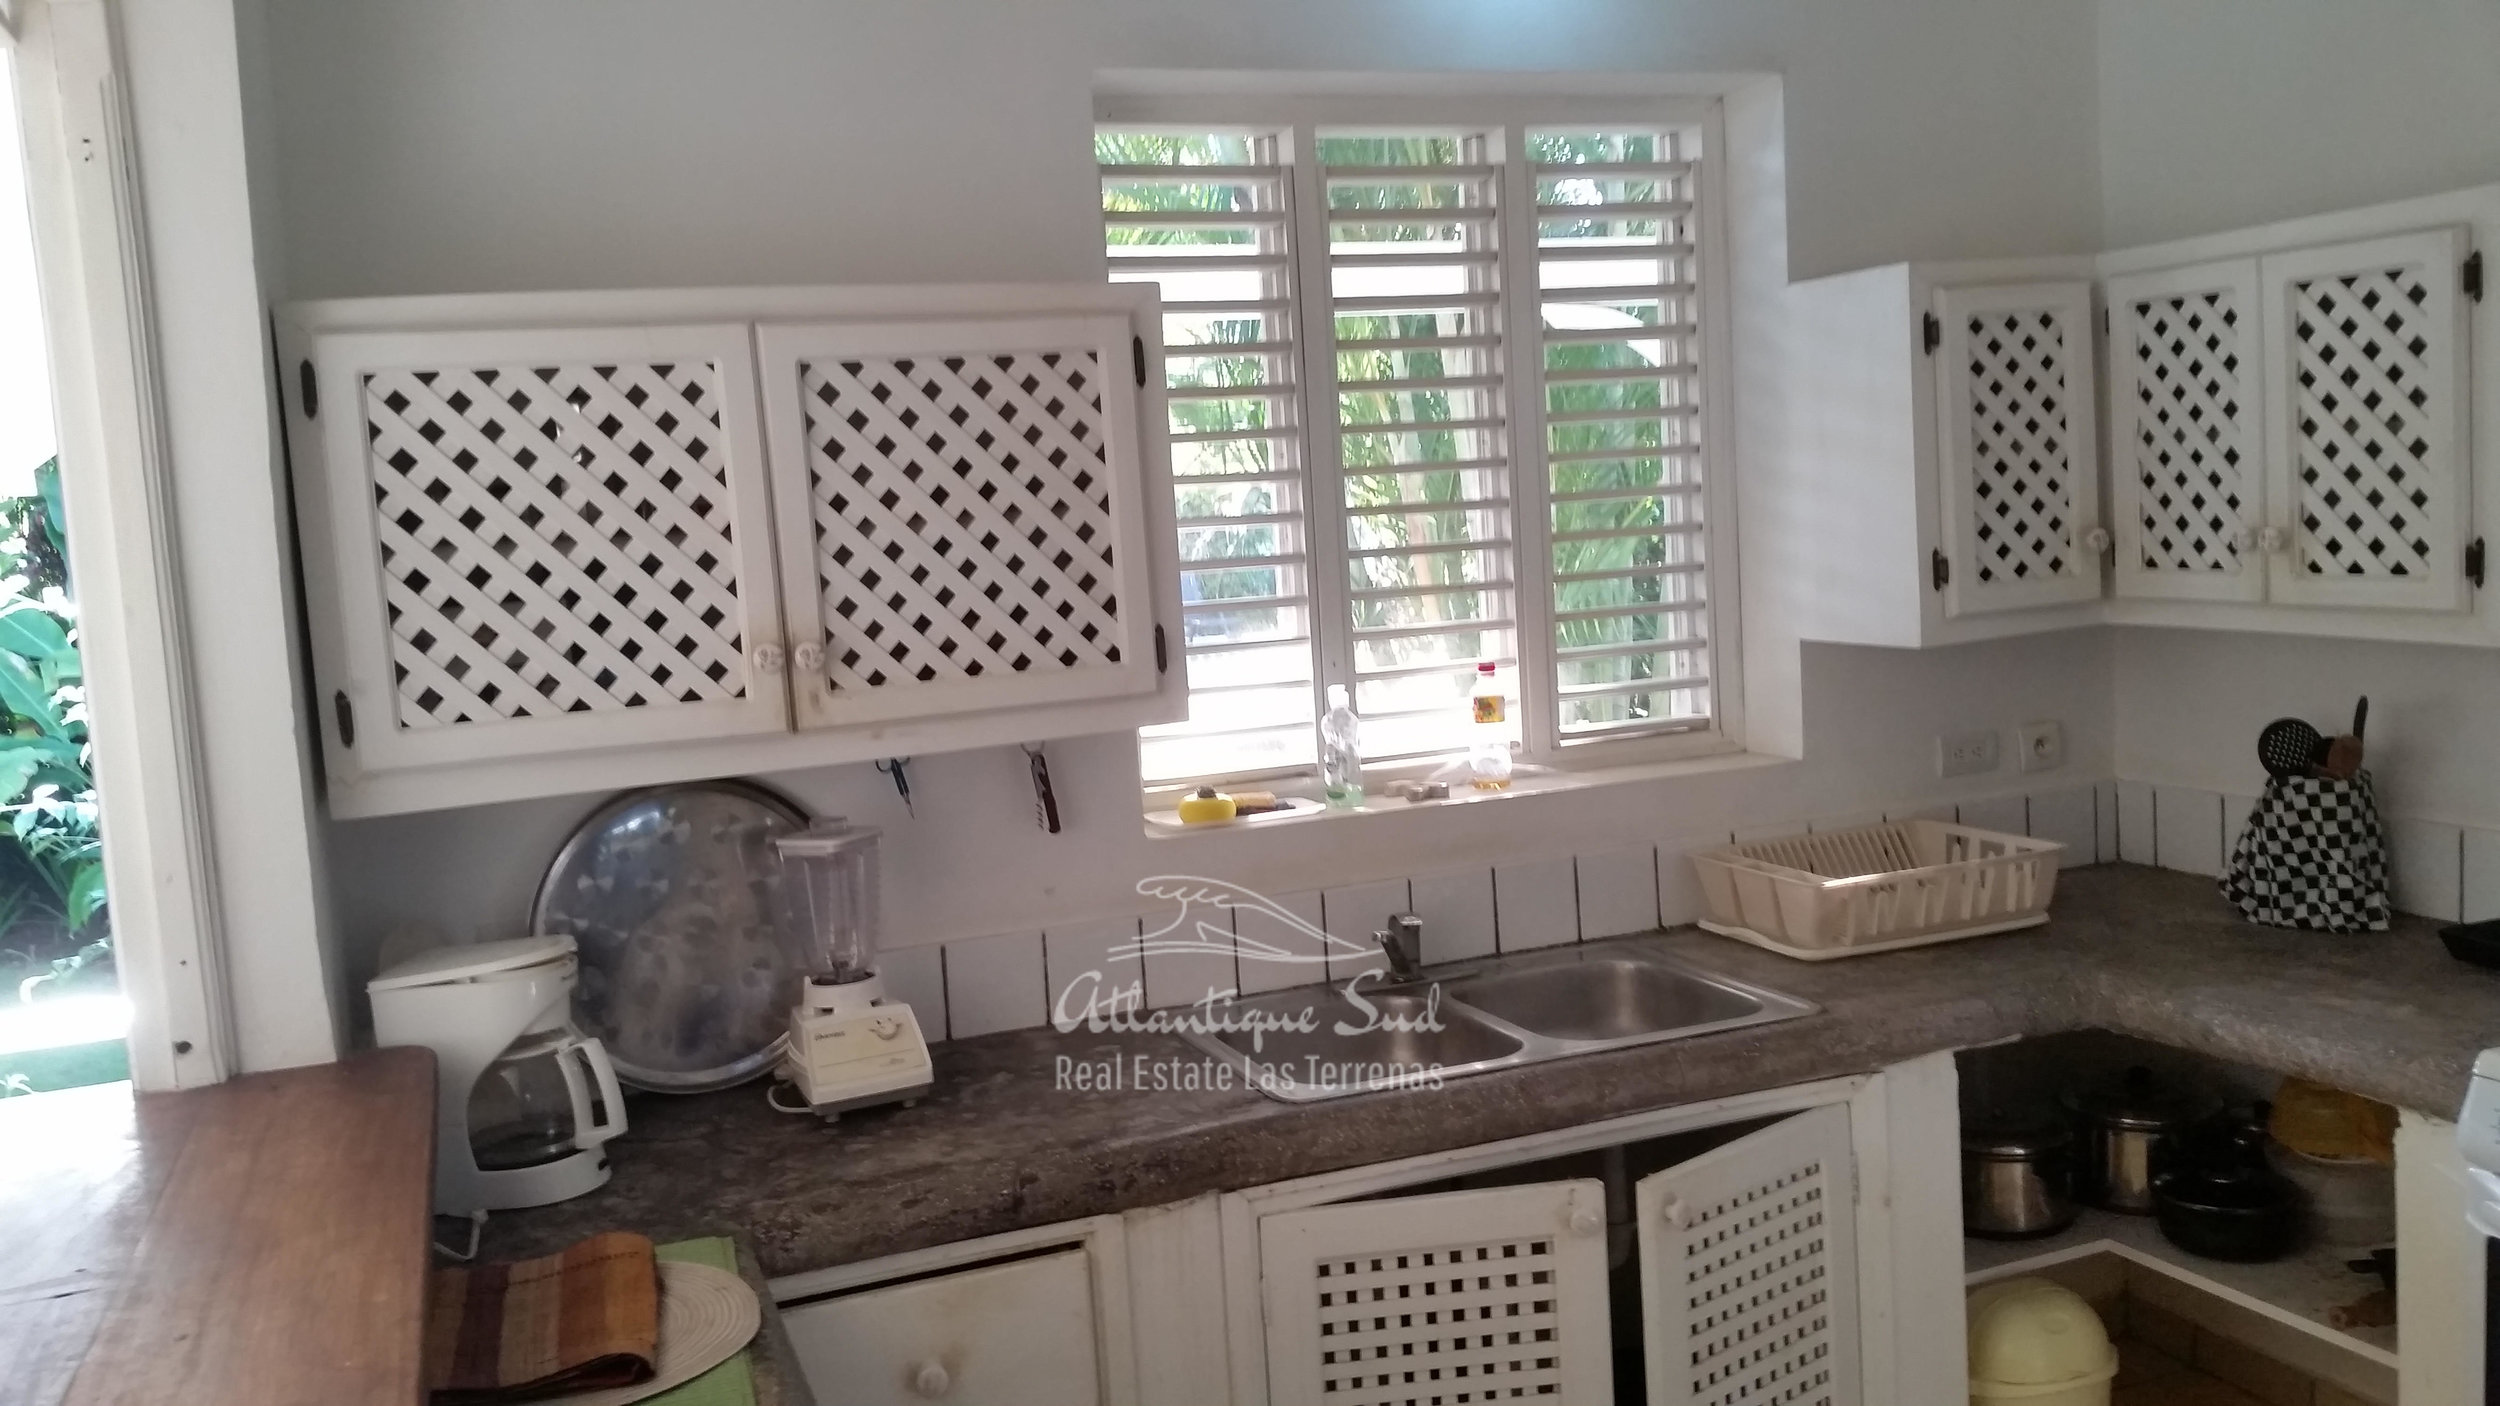 Villa in quiet community close to the beach Real Estate Las Terrenas Atlantique Sud Dominican Republic12.jpg